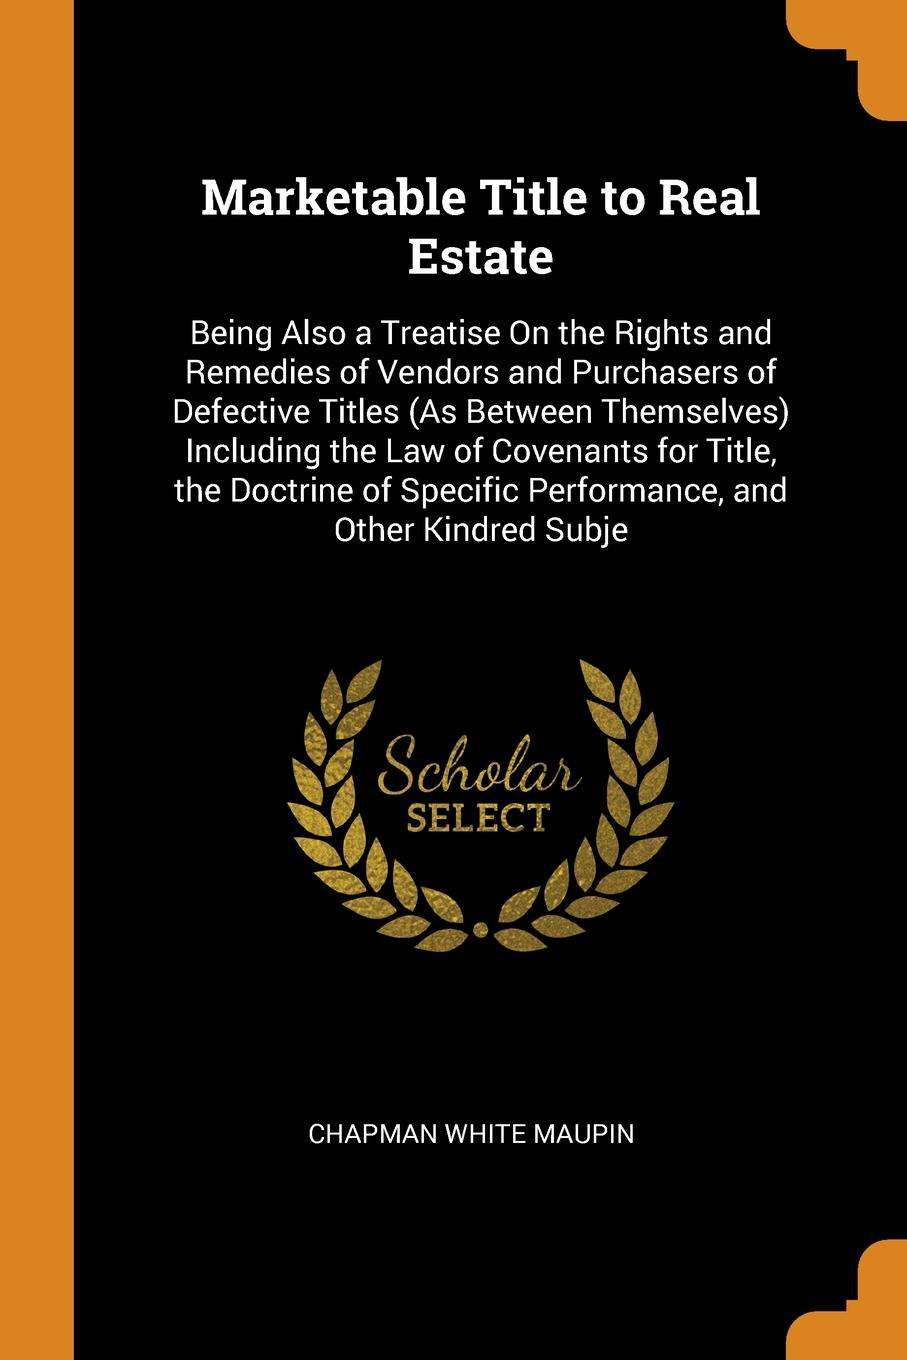 """Marketable Title to Real Estate. Being Also a Treatise On the Rights and Remedies of Vendors and Purchasers of Defective Titles (As Between Themselves) Including the Law of Covenants for Title, the Doctrine of Specific Performance, and Other Kindr... Книга""""Marketable Title to Real Estate. Being Also a Treatise..."""